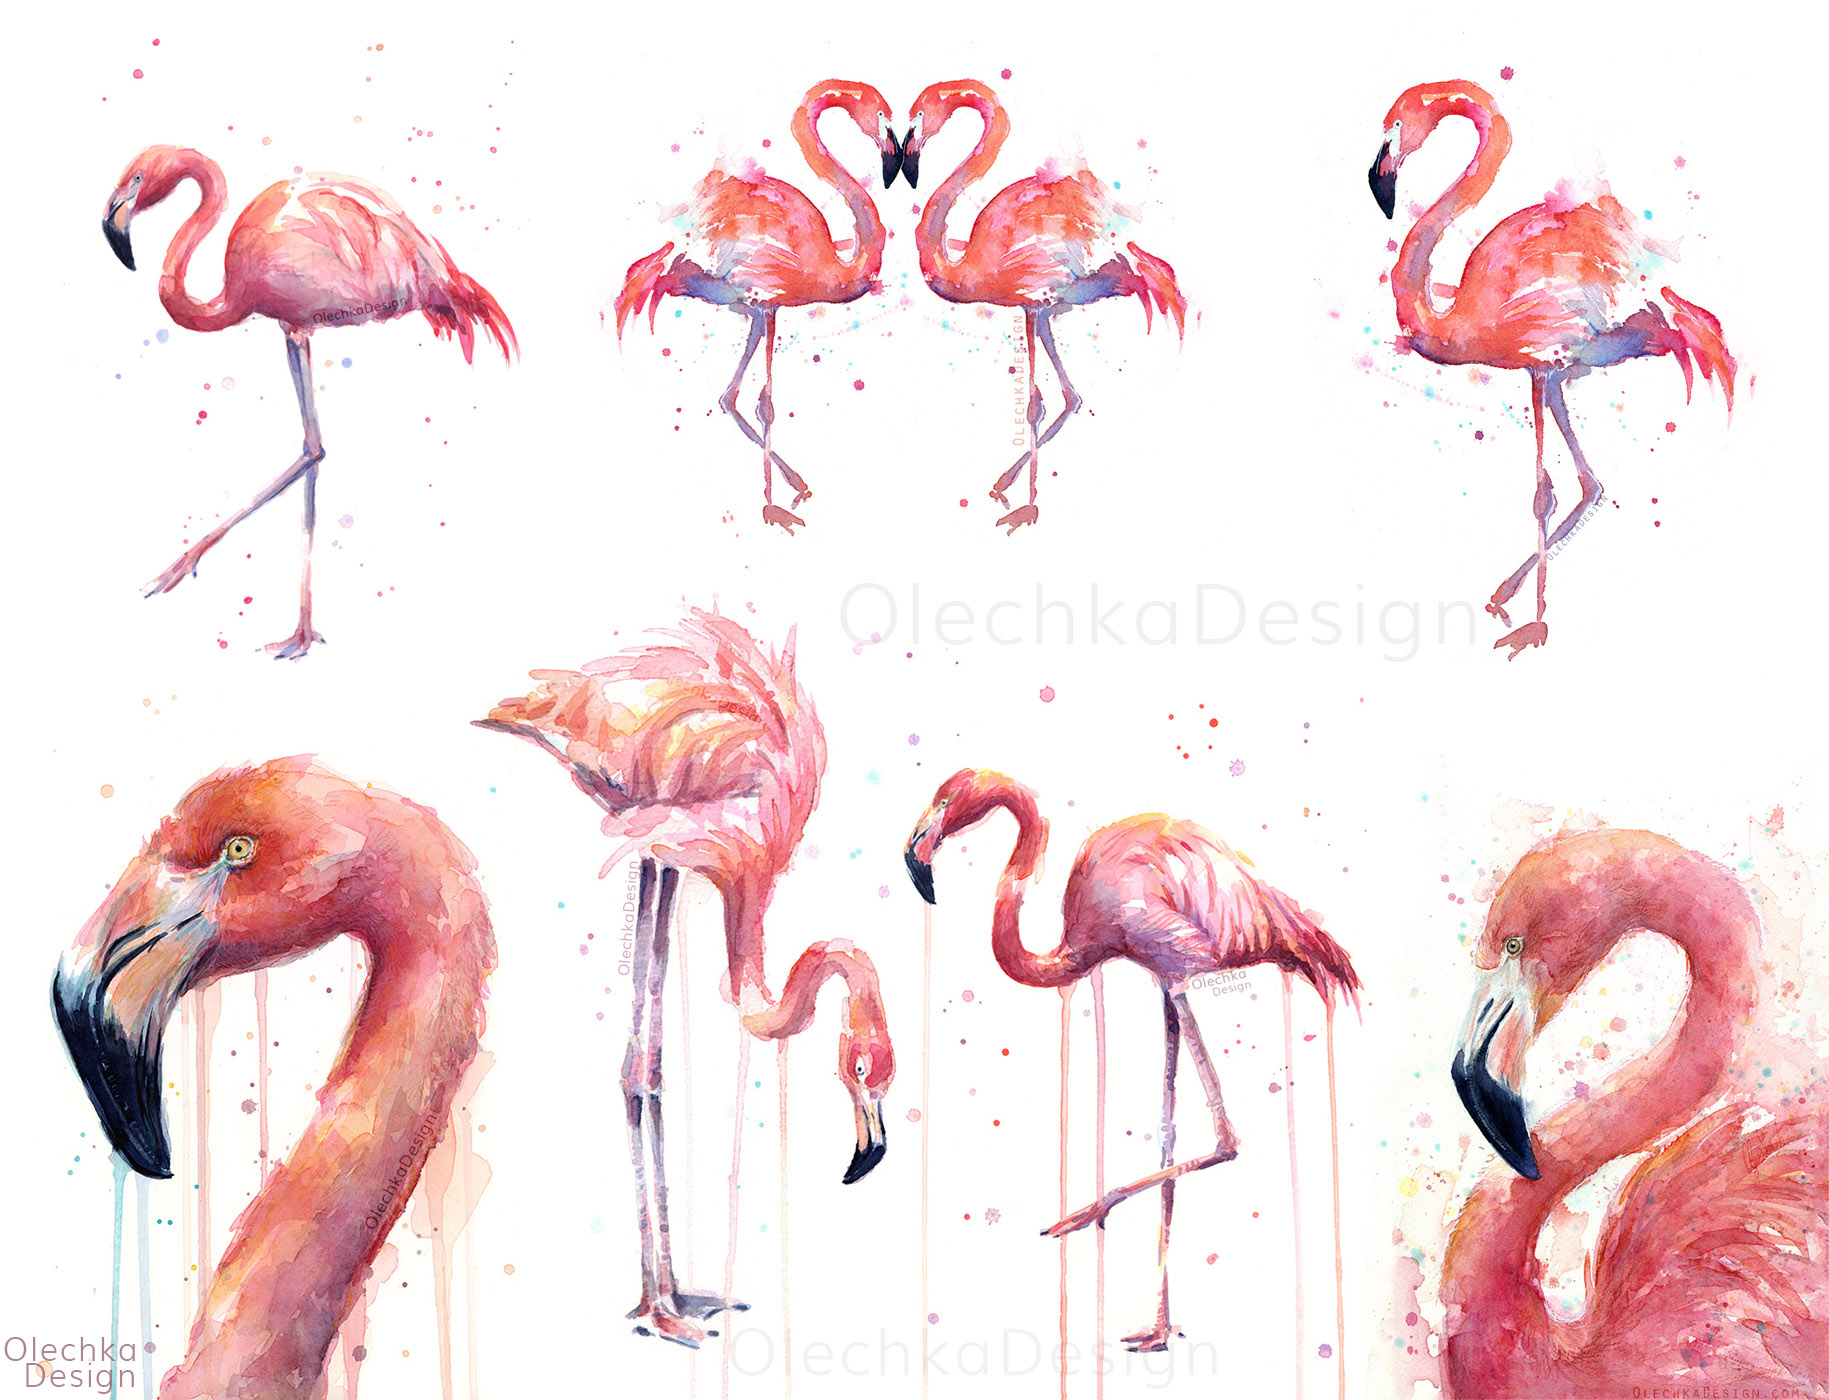 Flamingos-watercolor-painting-illustration-tropical-birds-olechkadesign-art.jpg